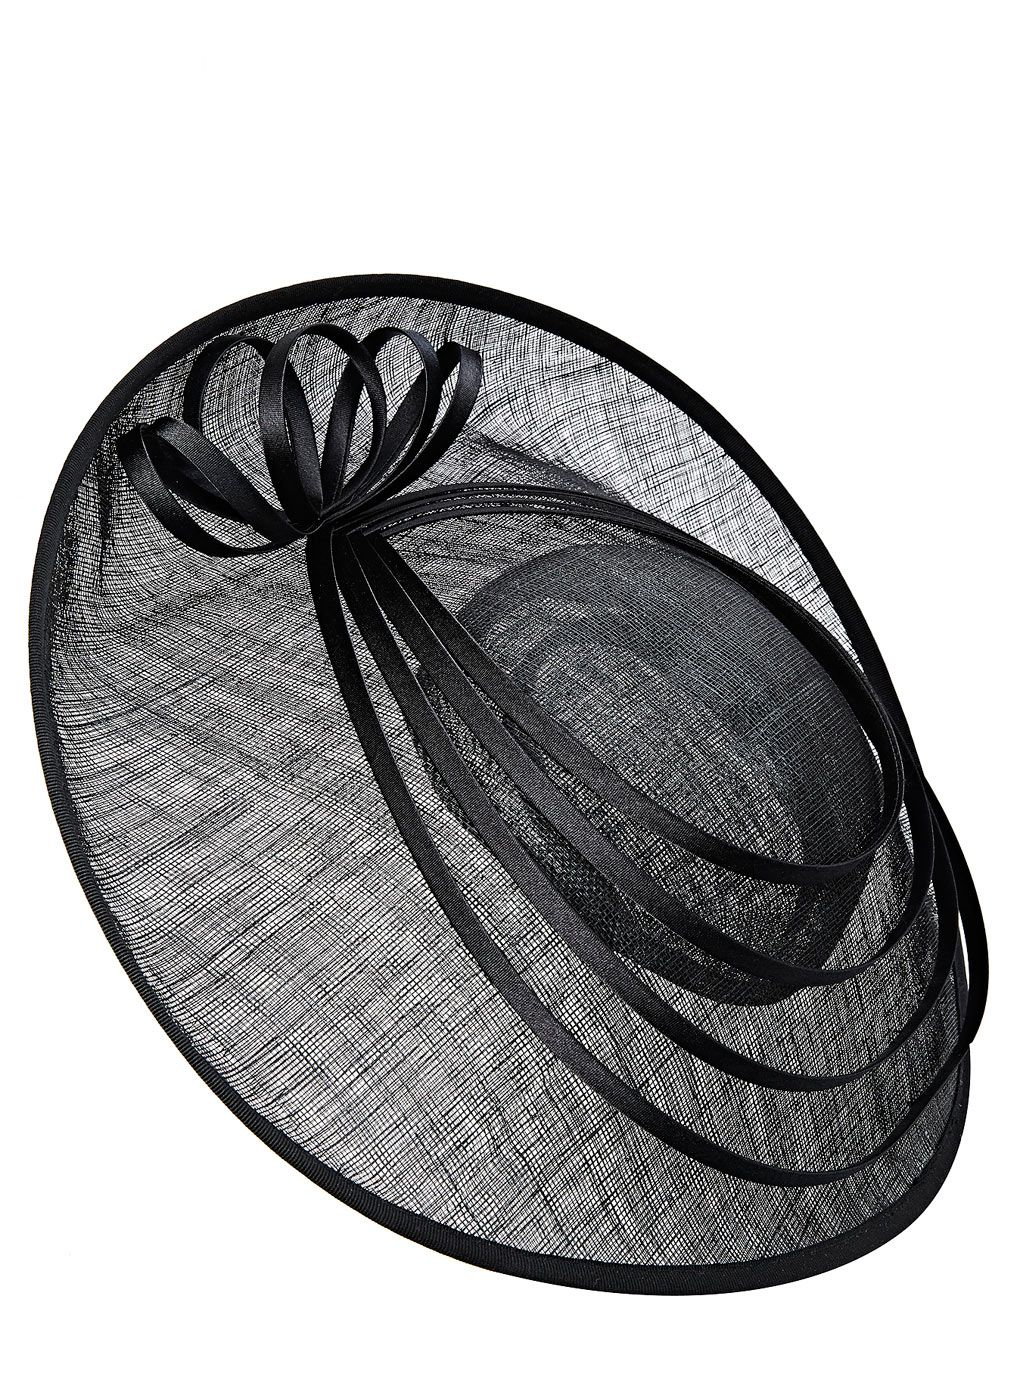 Black Spiral Ring Large Disc Fascinator Http Www Weddingheart Co